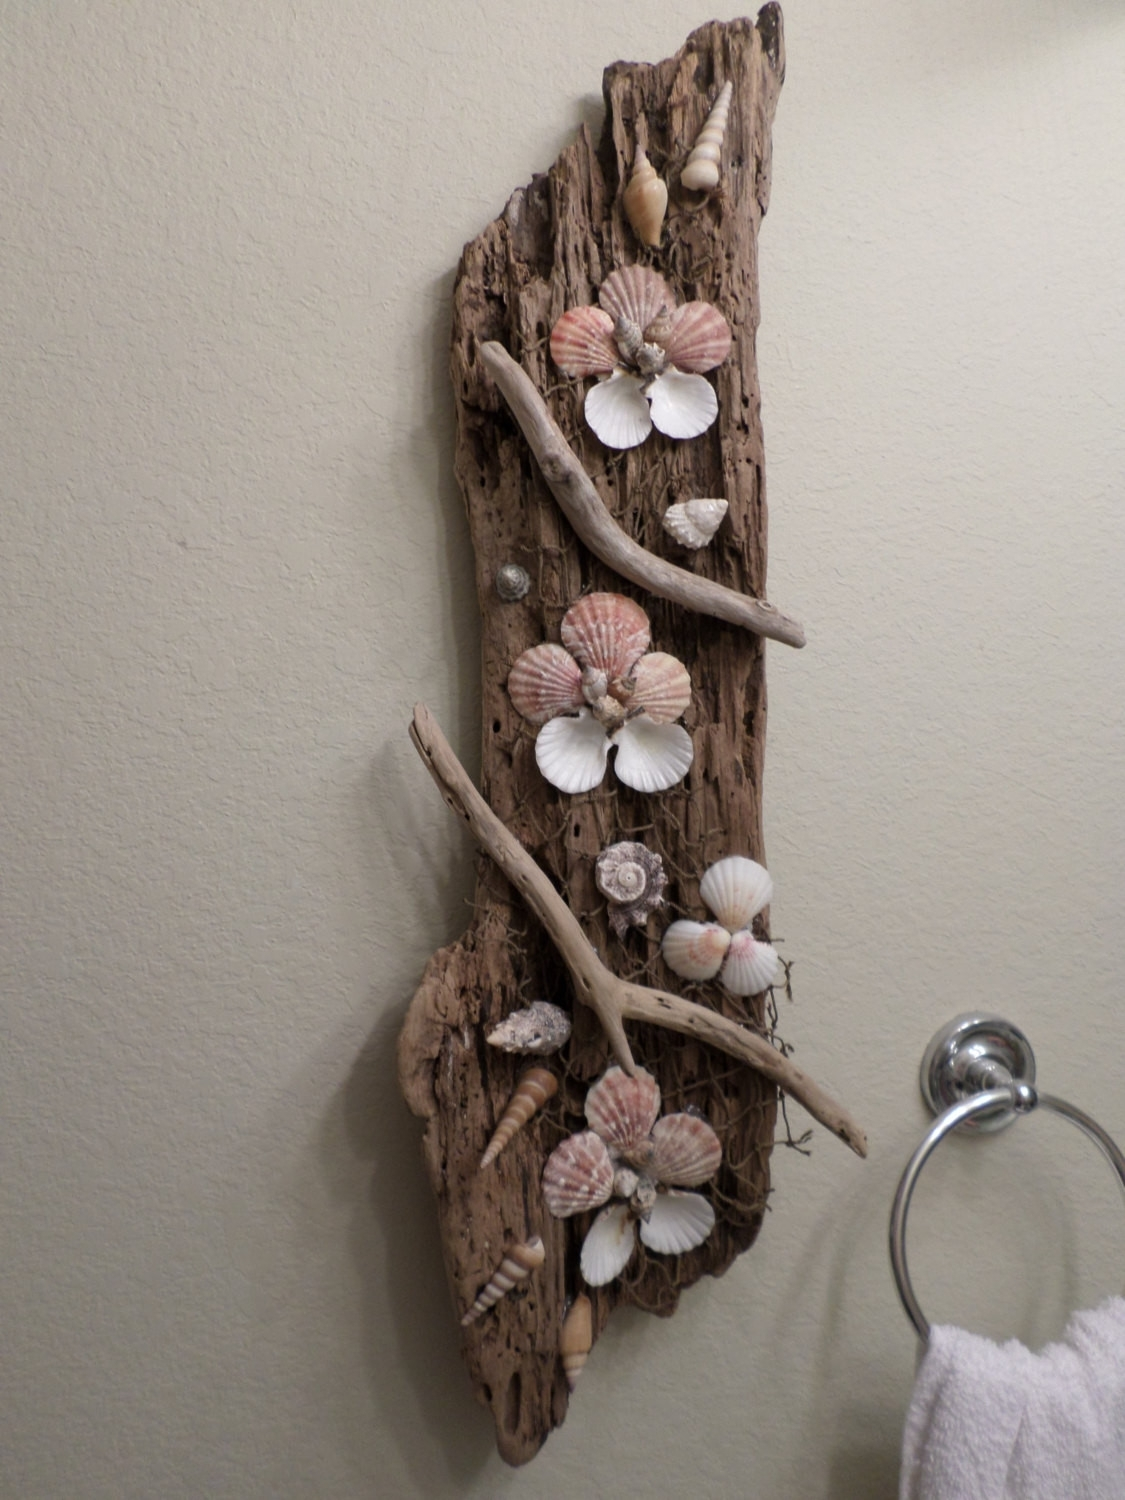 35 Unique Driftwood Wall Decor | Wall Decor Inspiration throughout Driftwood Wall Art (Image 2 of 20)